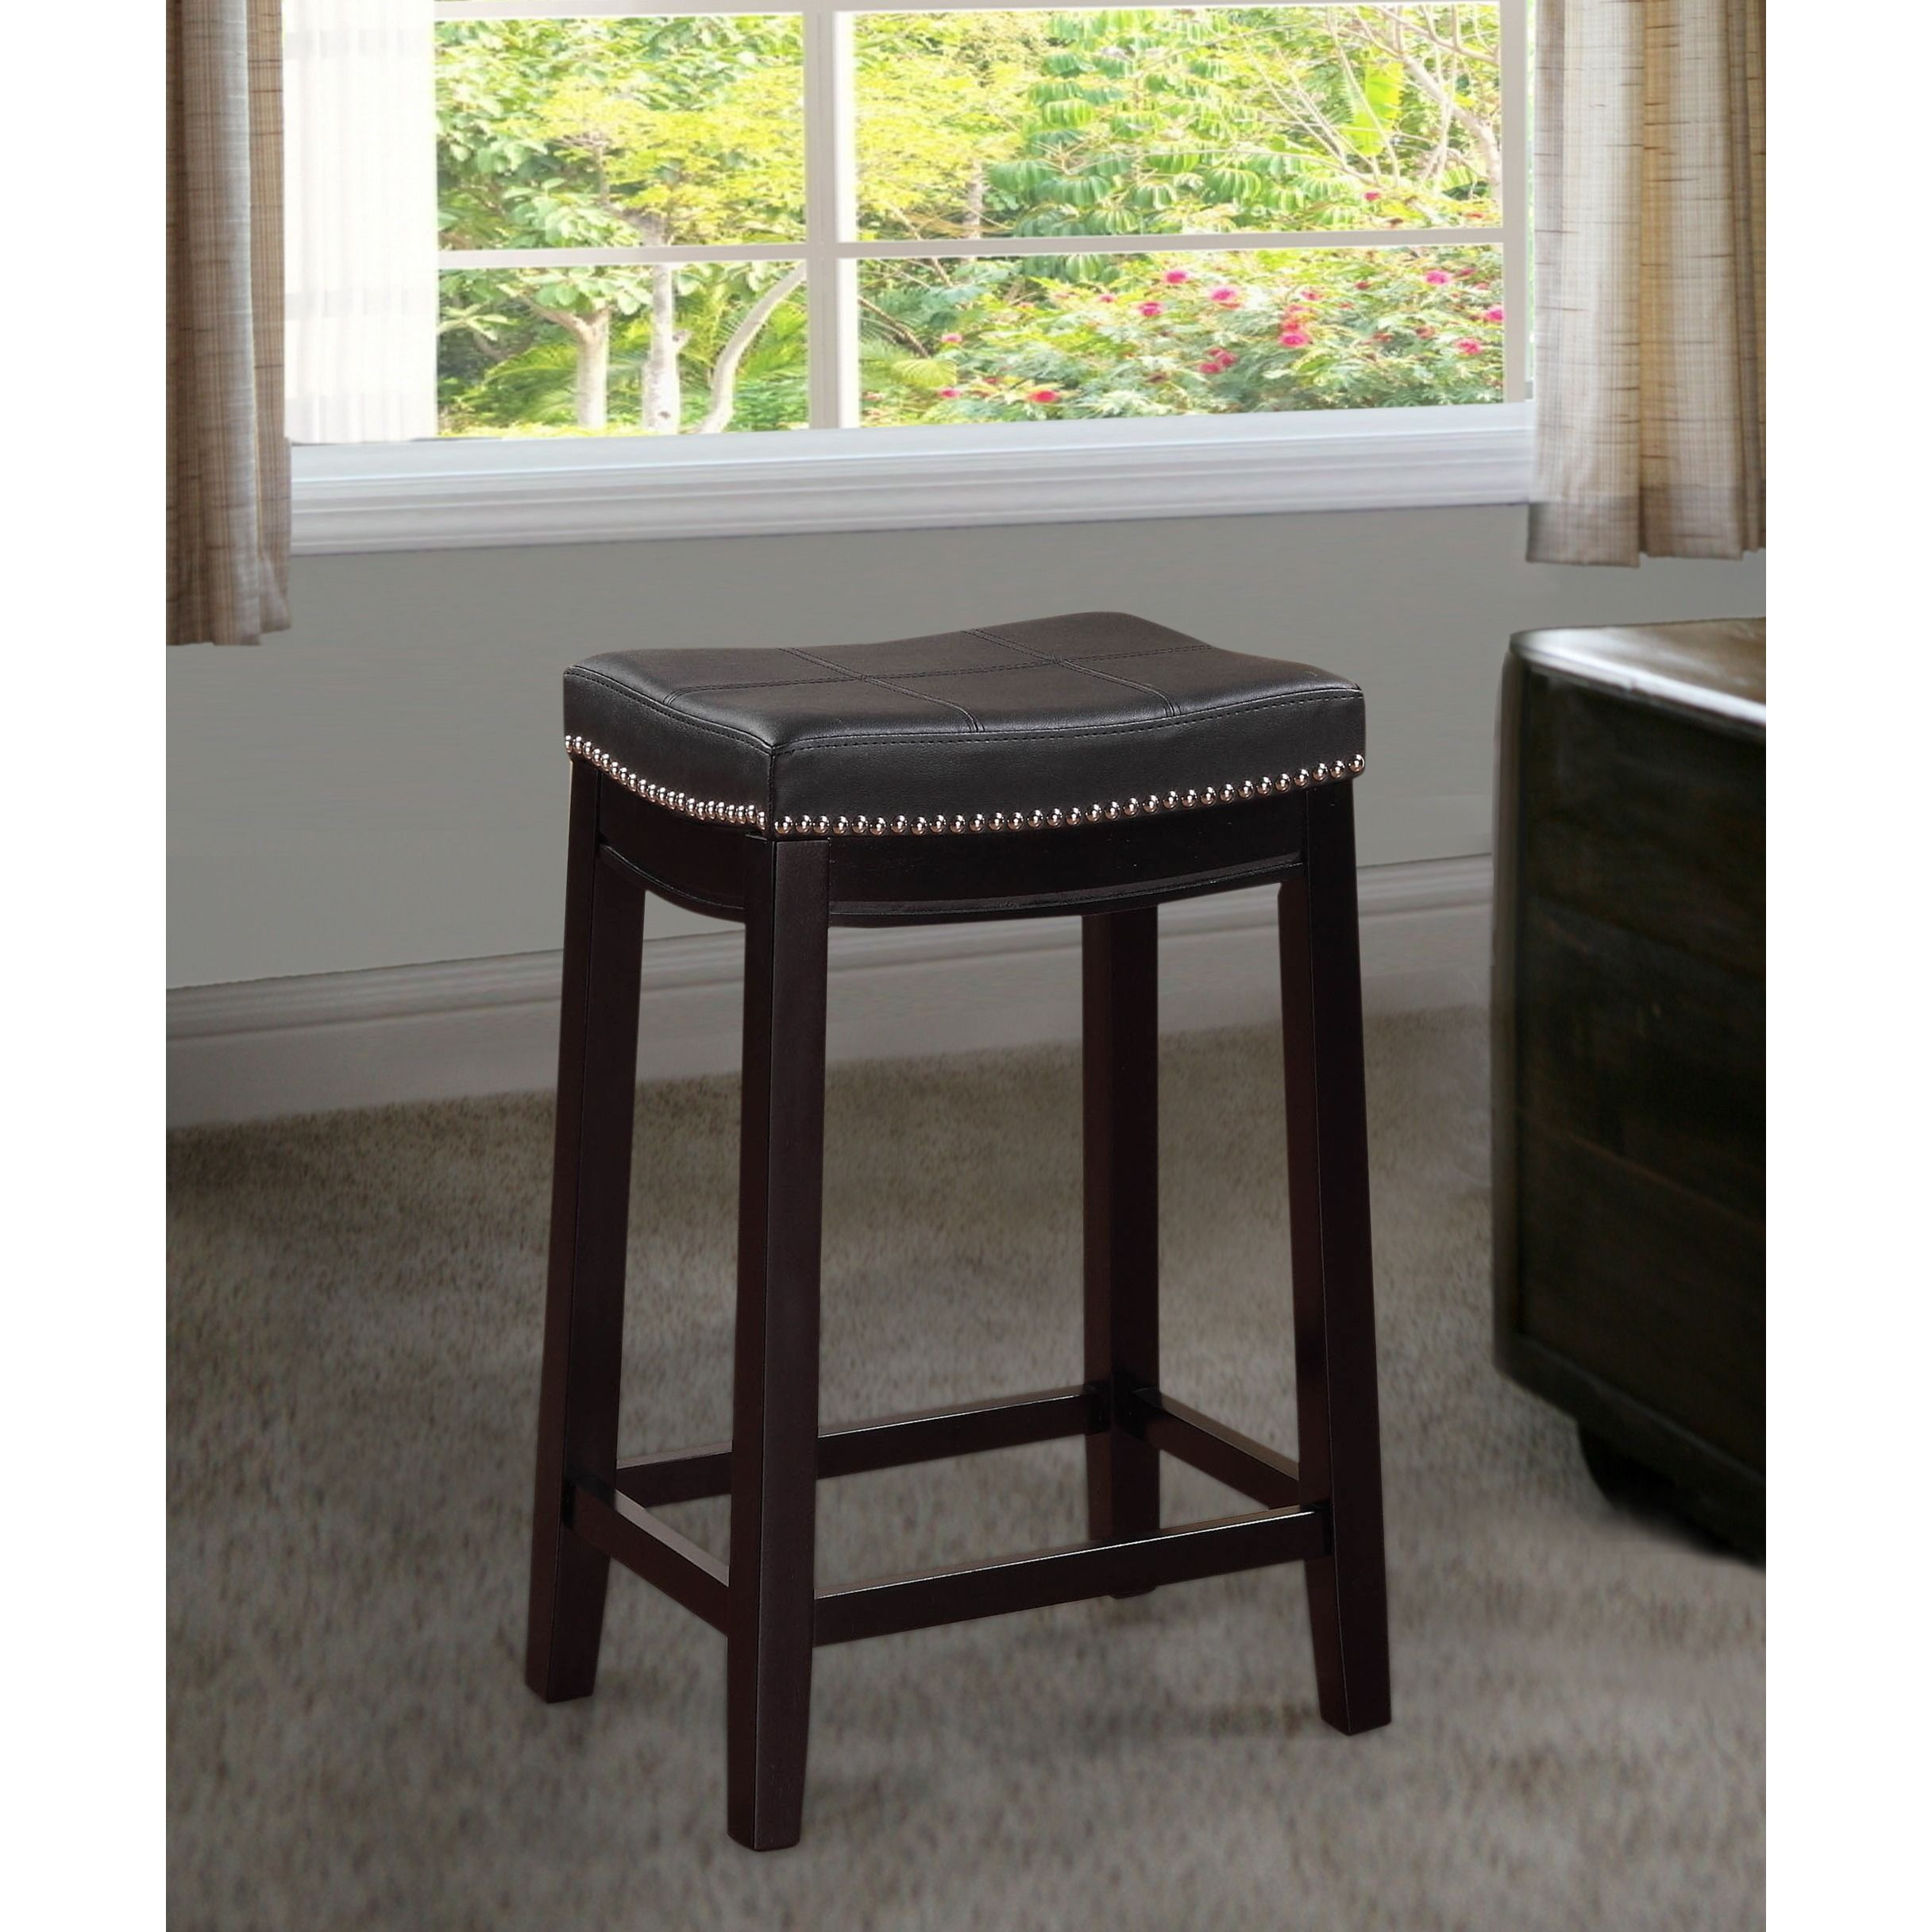 The Linon Claridge Black Counter Stool Will Add Stylish